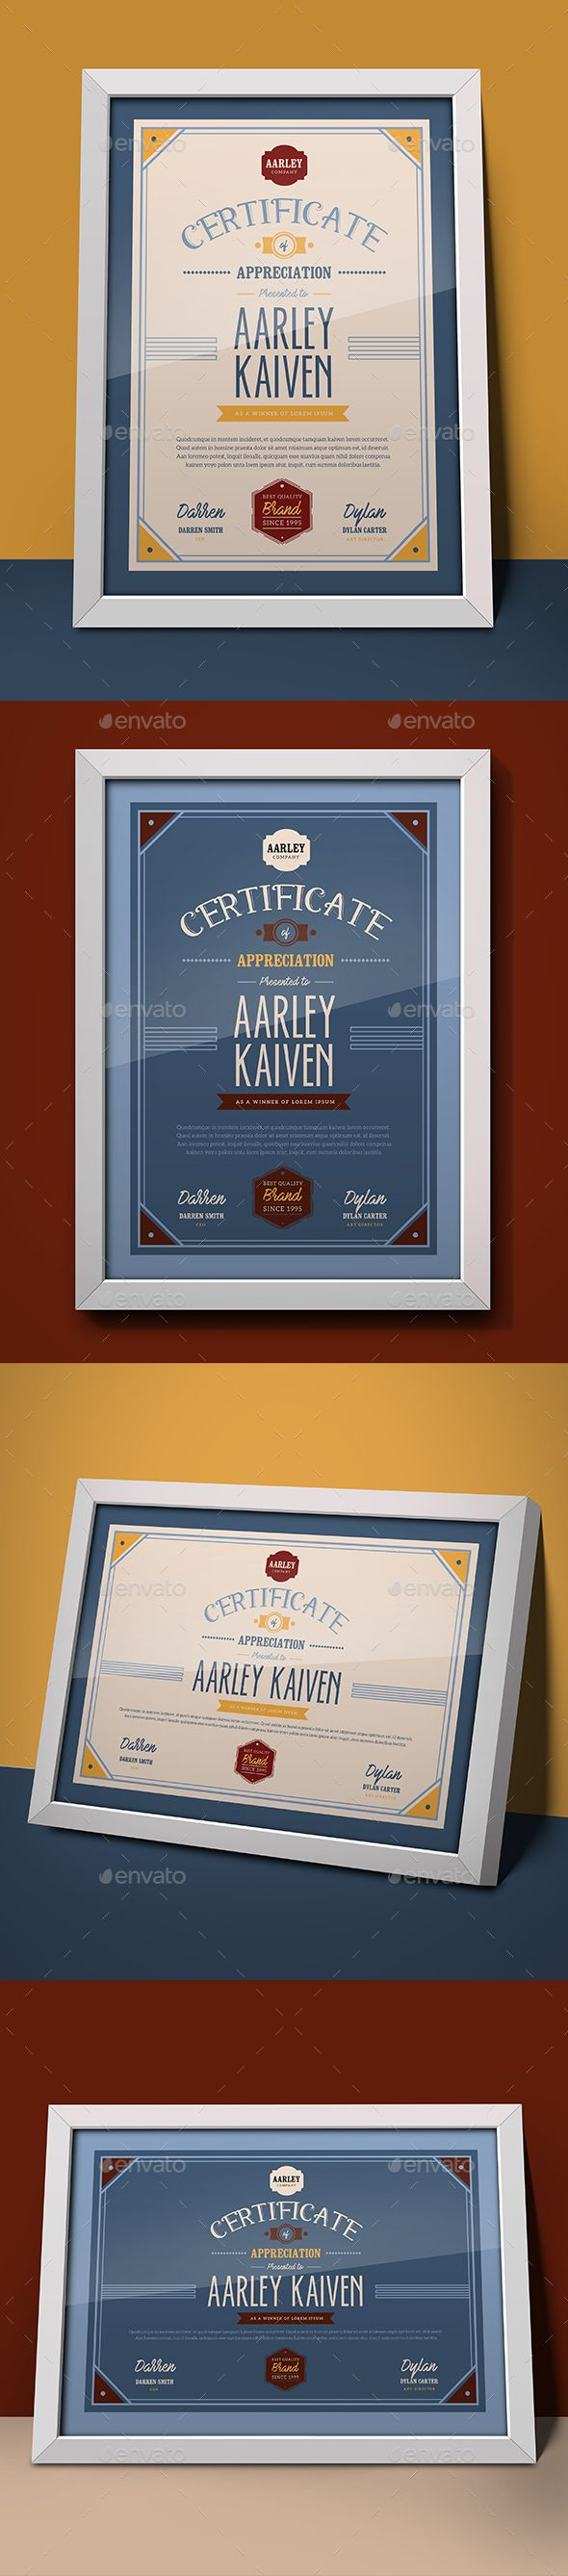 #Multipurpose #Certificates - Certificates #Stationery Download here: https://graphicriver.net/item/multipurpose-certificates/18800256?ref=alena994